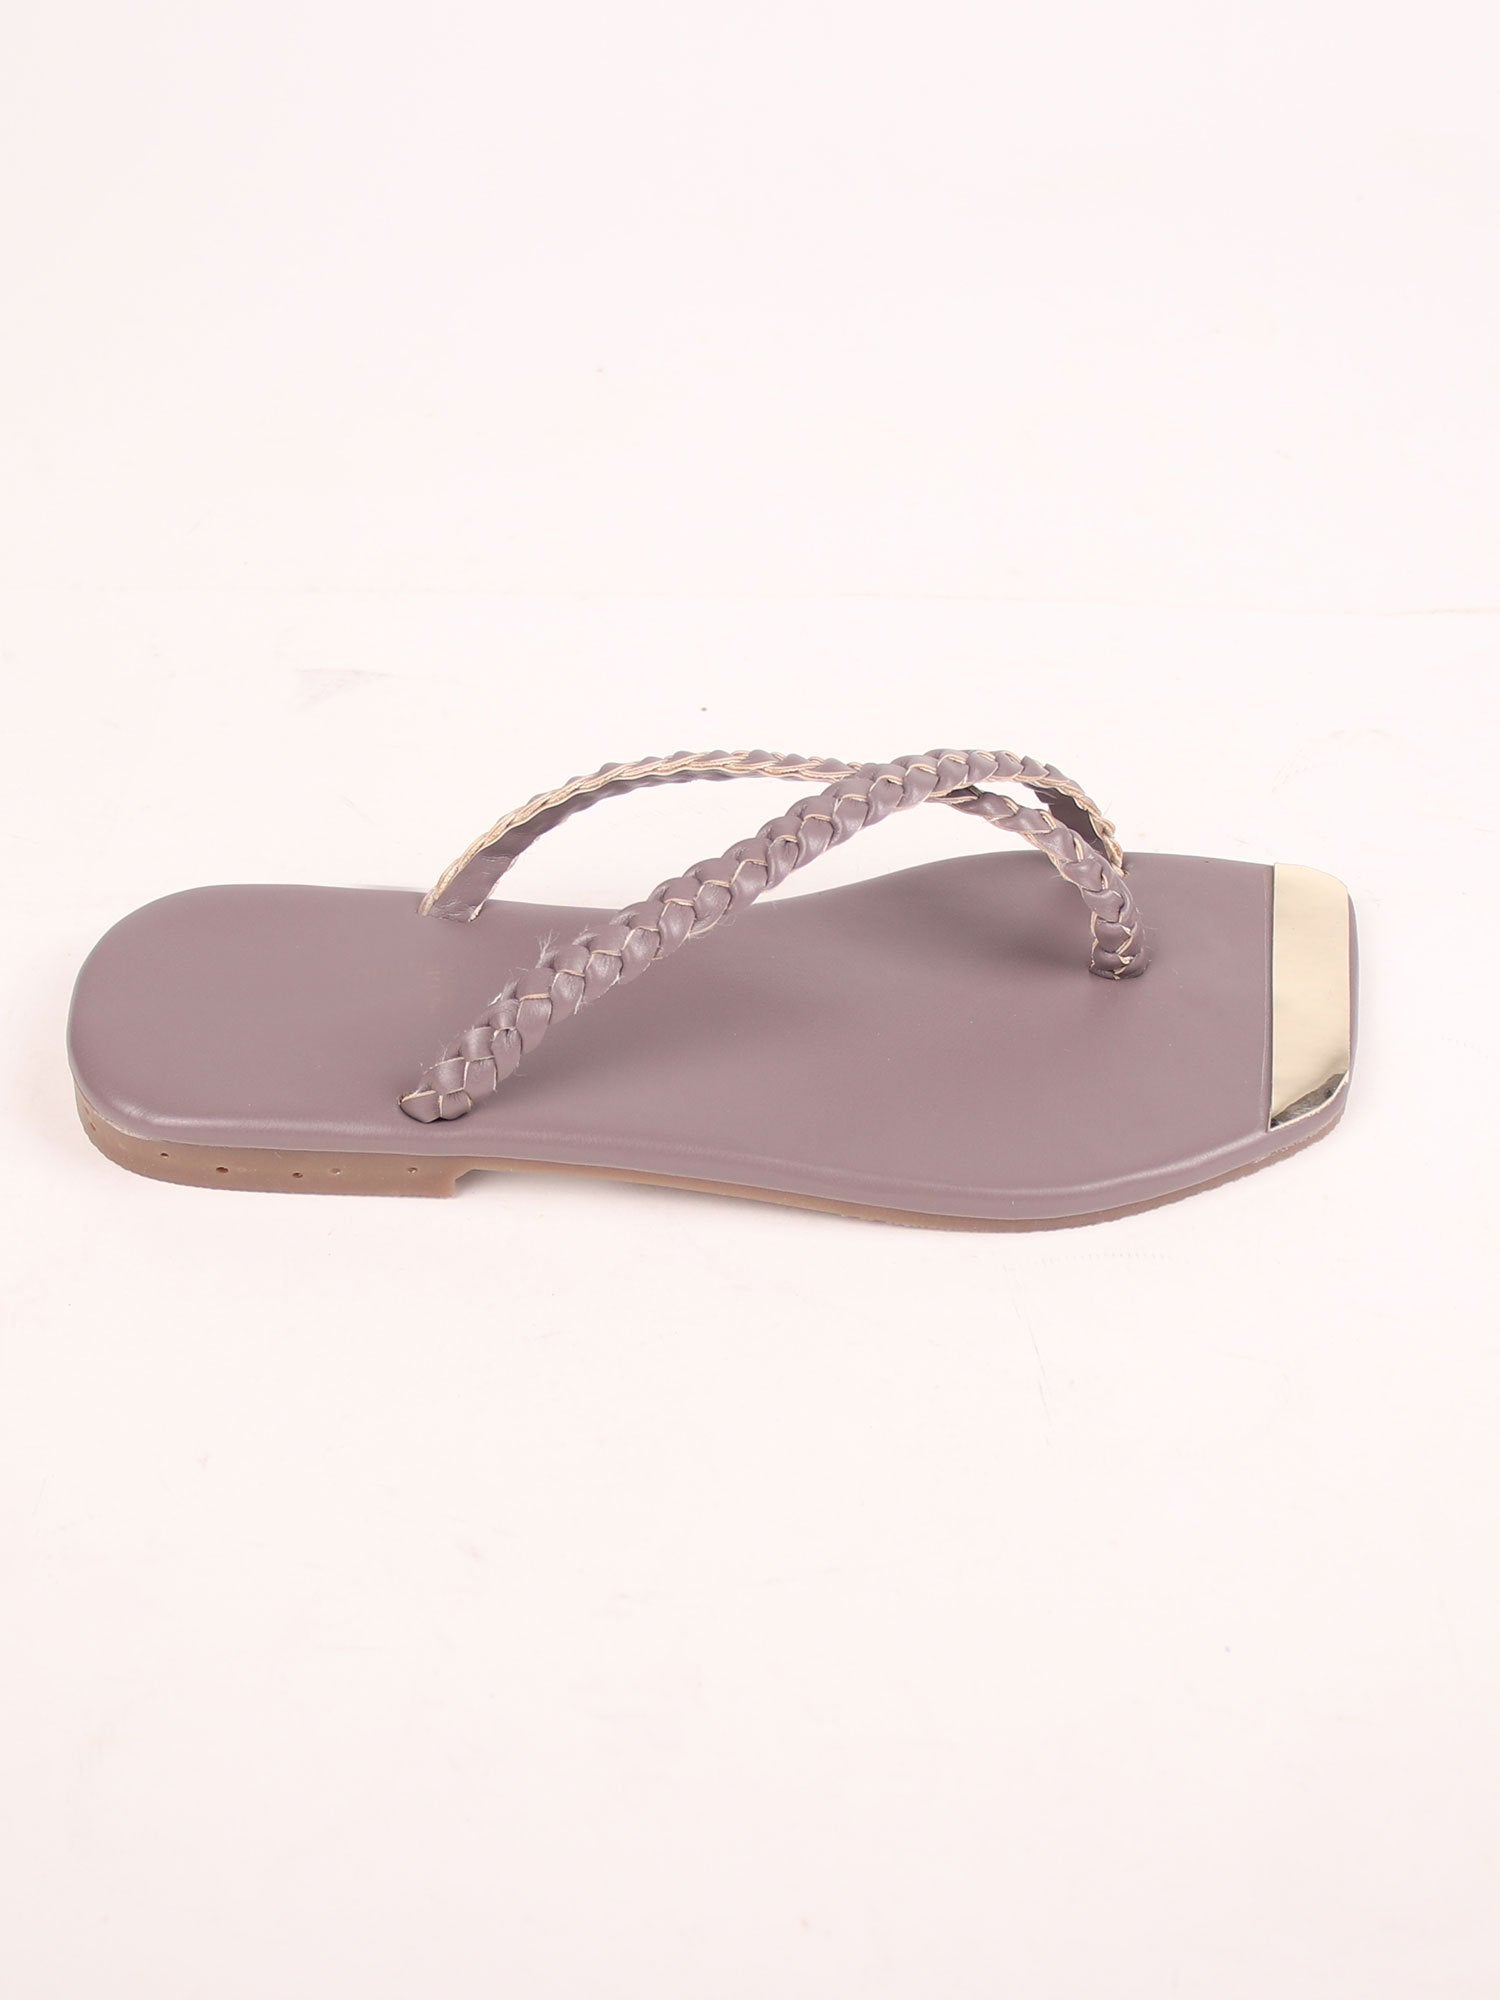 BRAIDED FLATS IN LAVA GREY